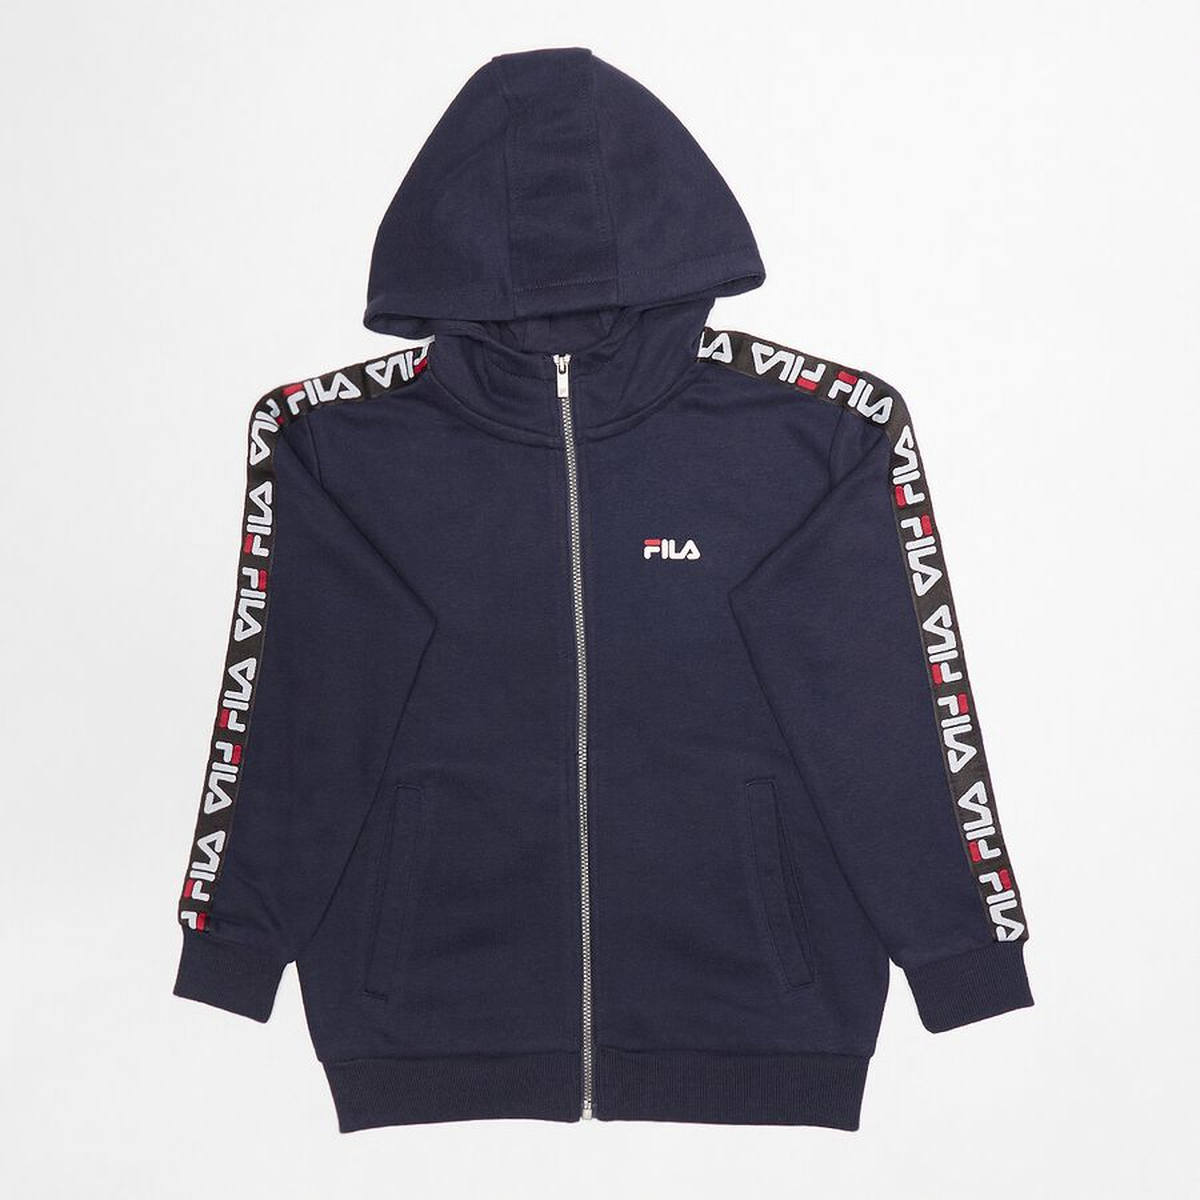 FILA KIDS ADARA ZIP JACKET